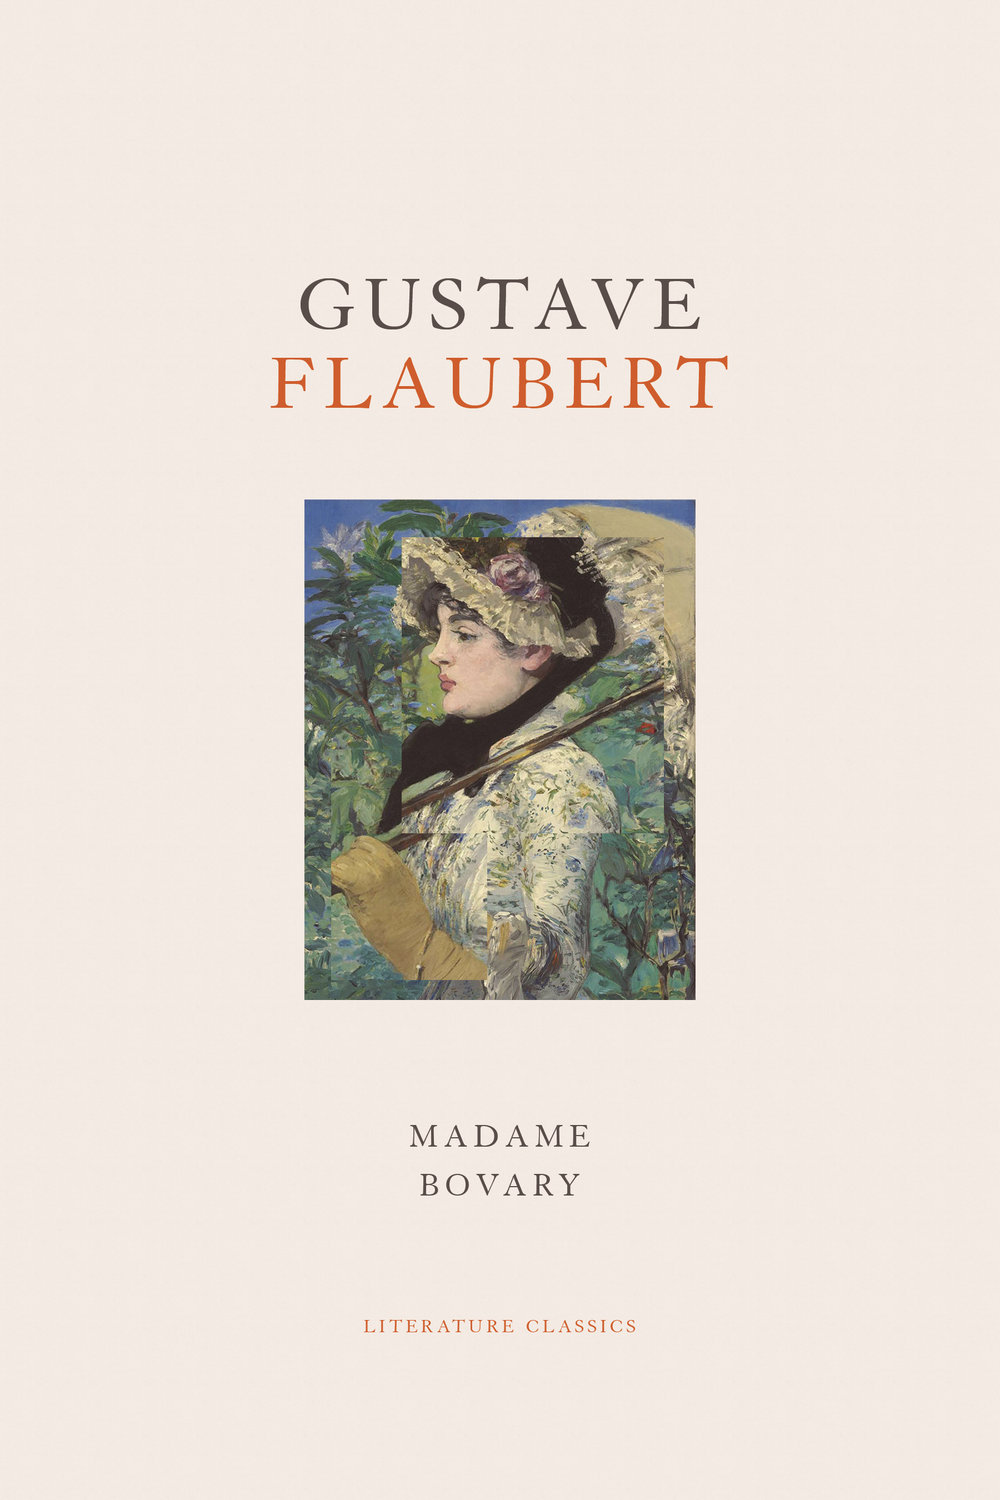 My re-imagining of Flaubert's covers. All feature collages of 19th century paintings. (Self initiated project - not commissioned)